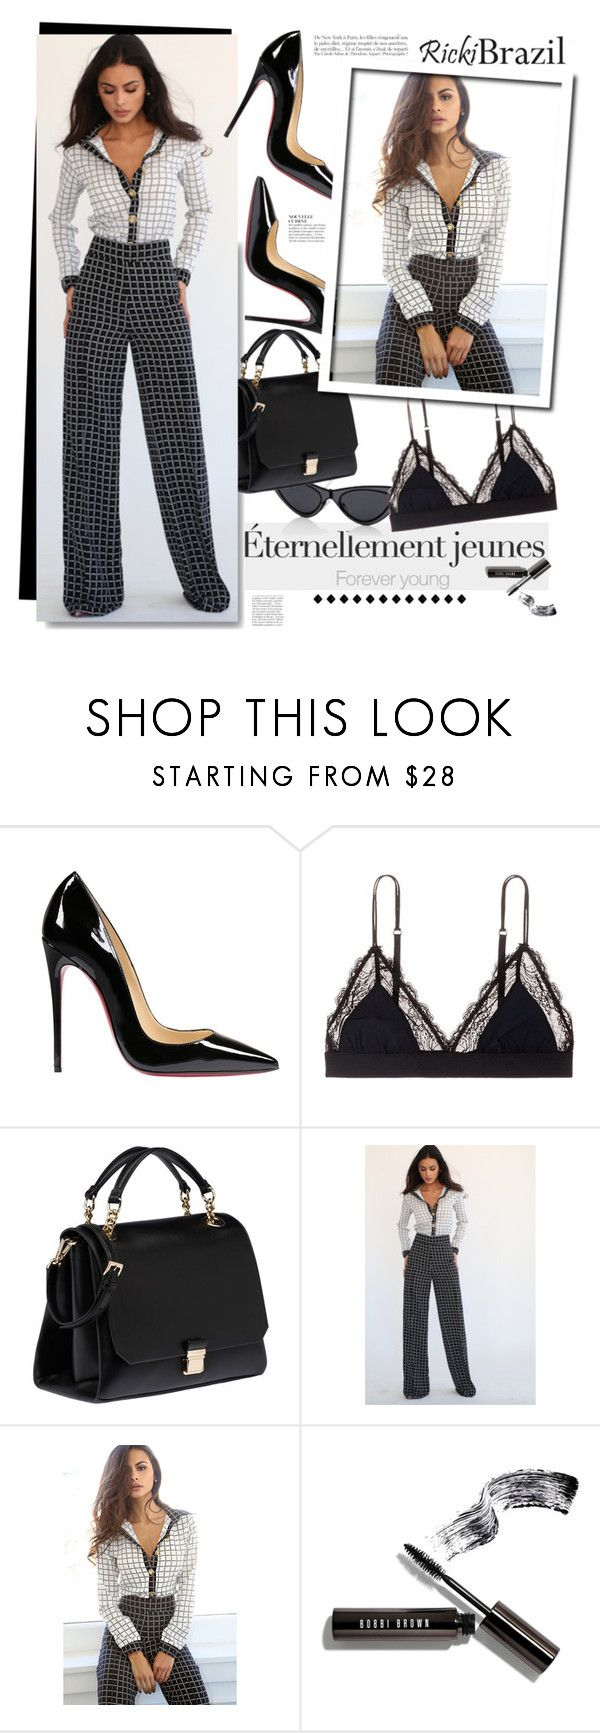 """Rickybrazil.com: Eternellement jeunes!"" by hamaly ❤ liked on Polyvore featuring Dries Van Noten, Christian Louboutin, LoveStories, Miu Miu, Bobbi Brown Cosmetics, Anja, ootd, blouse, pants and rickibrazil"